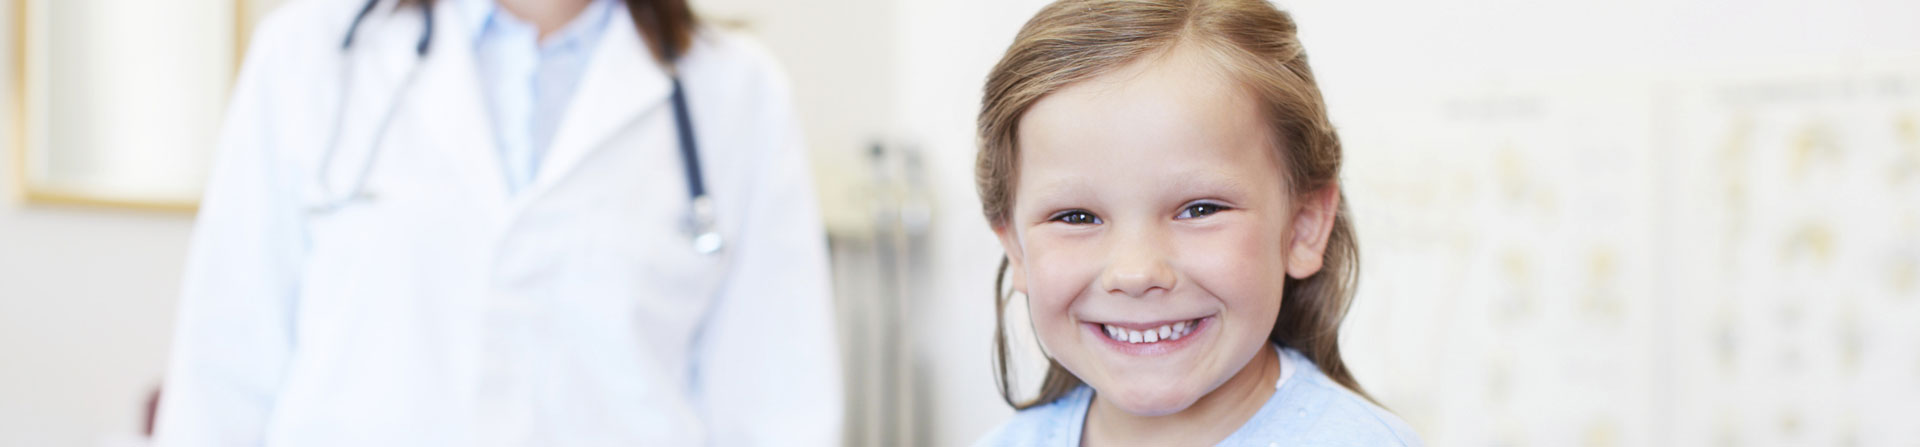 little girl smiling and her doctor